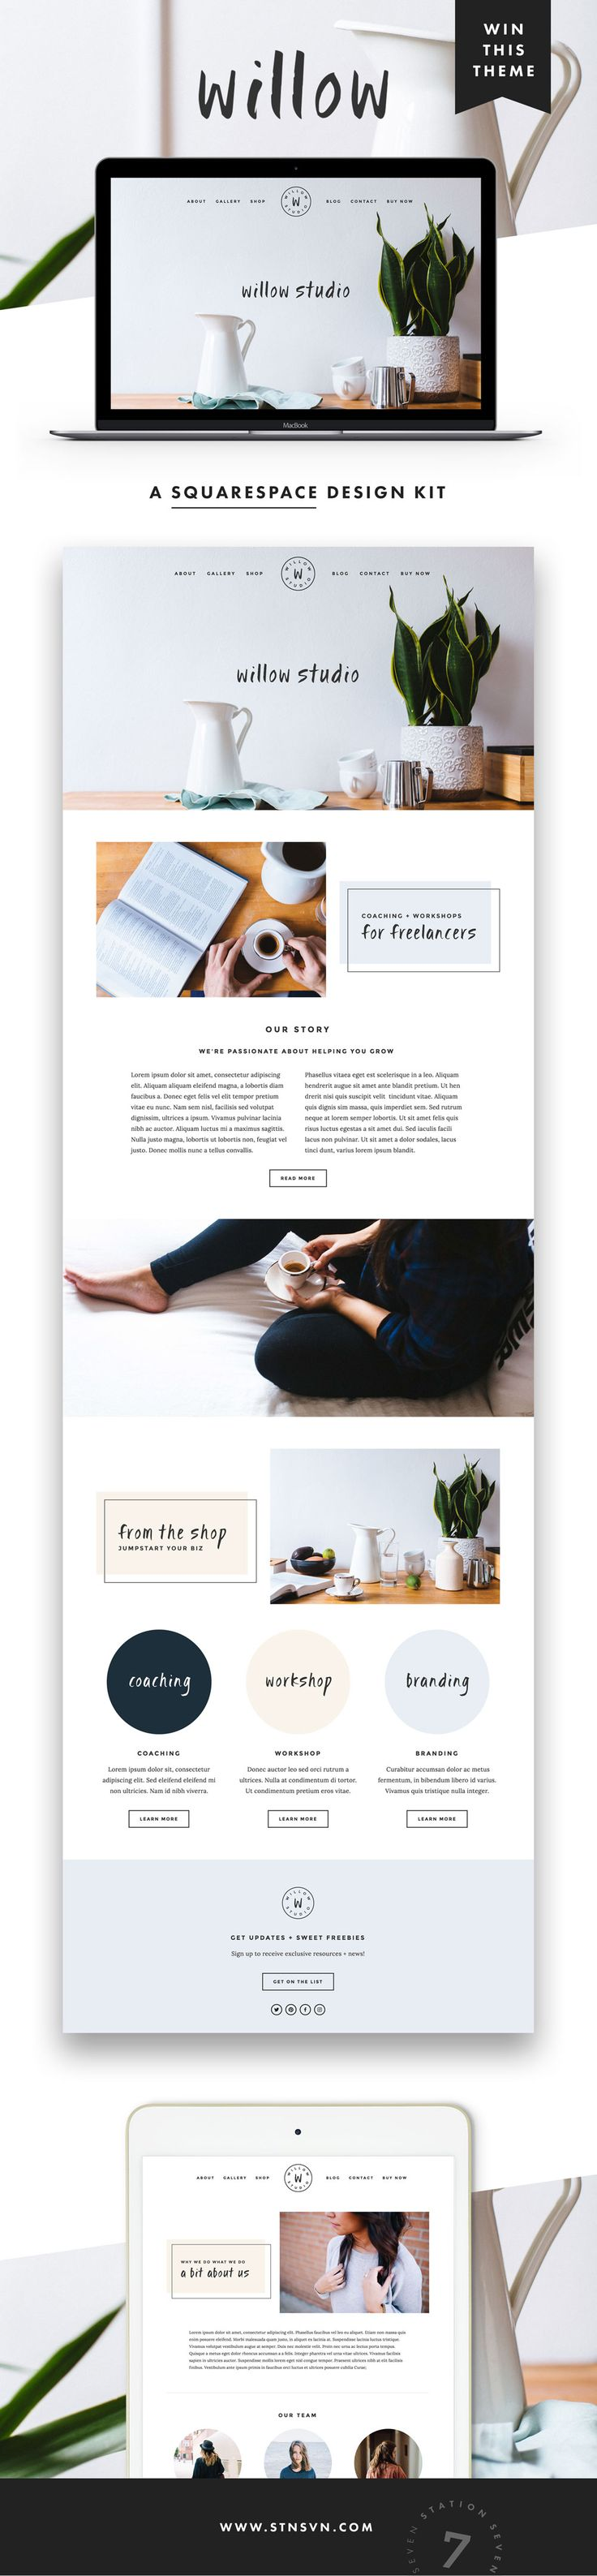 Minimal layout, modern, Squarespace website design, Squarespace template, coaching website - Station Seven. Click through to buy!